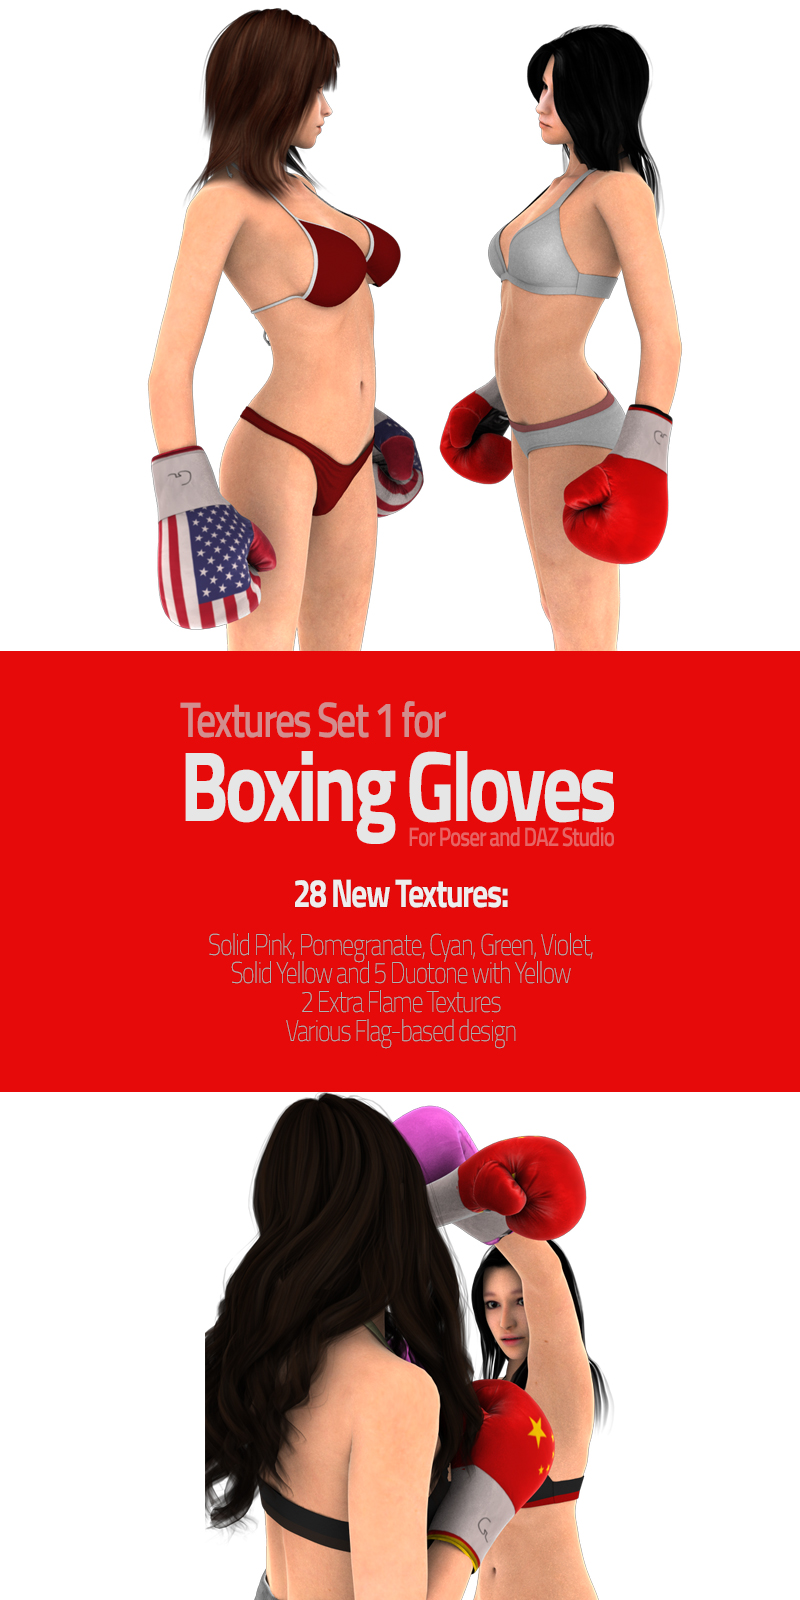 Textures Set 1 for Boxing Gloves